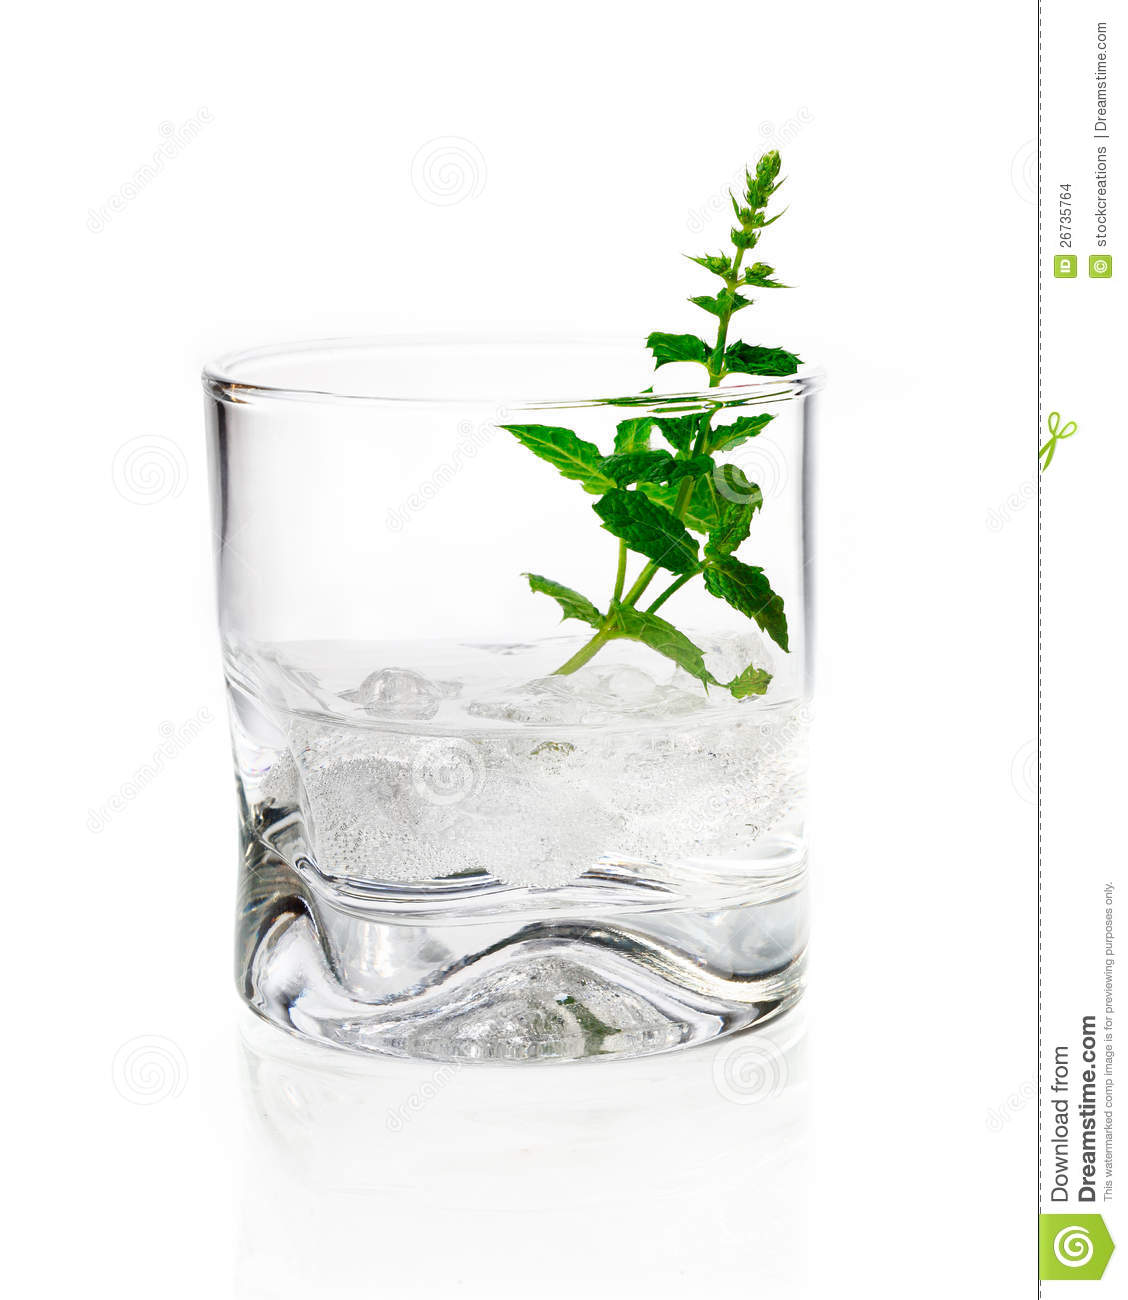 Tumbler Glas Shot Of Gin, Vermouth Or Vodka Stock Images - Image: 26735764